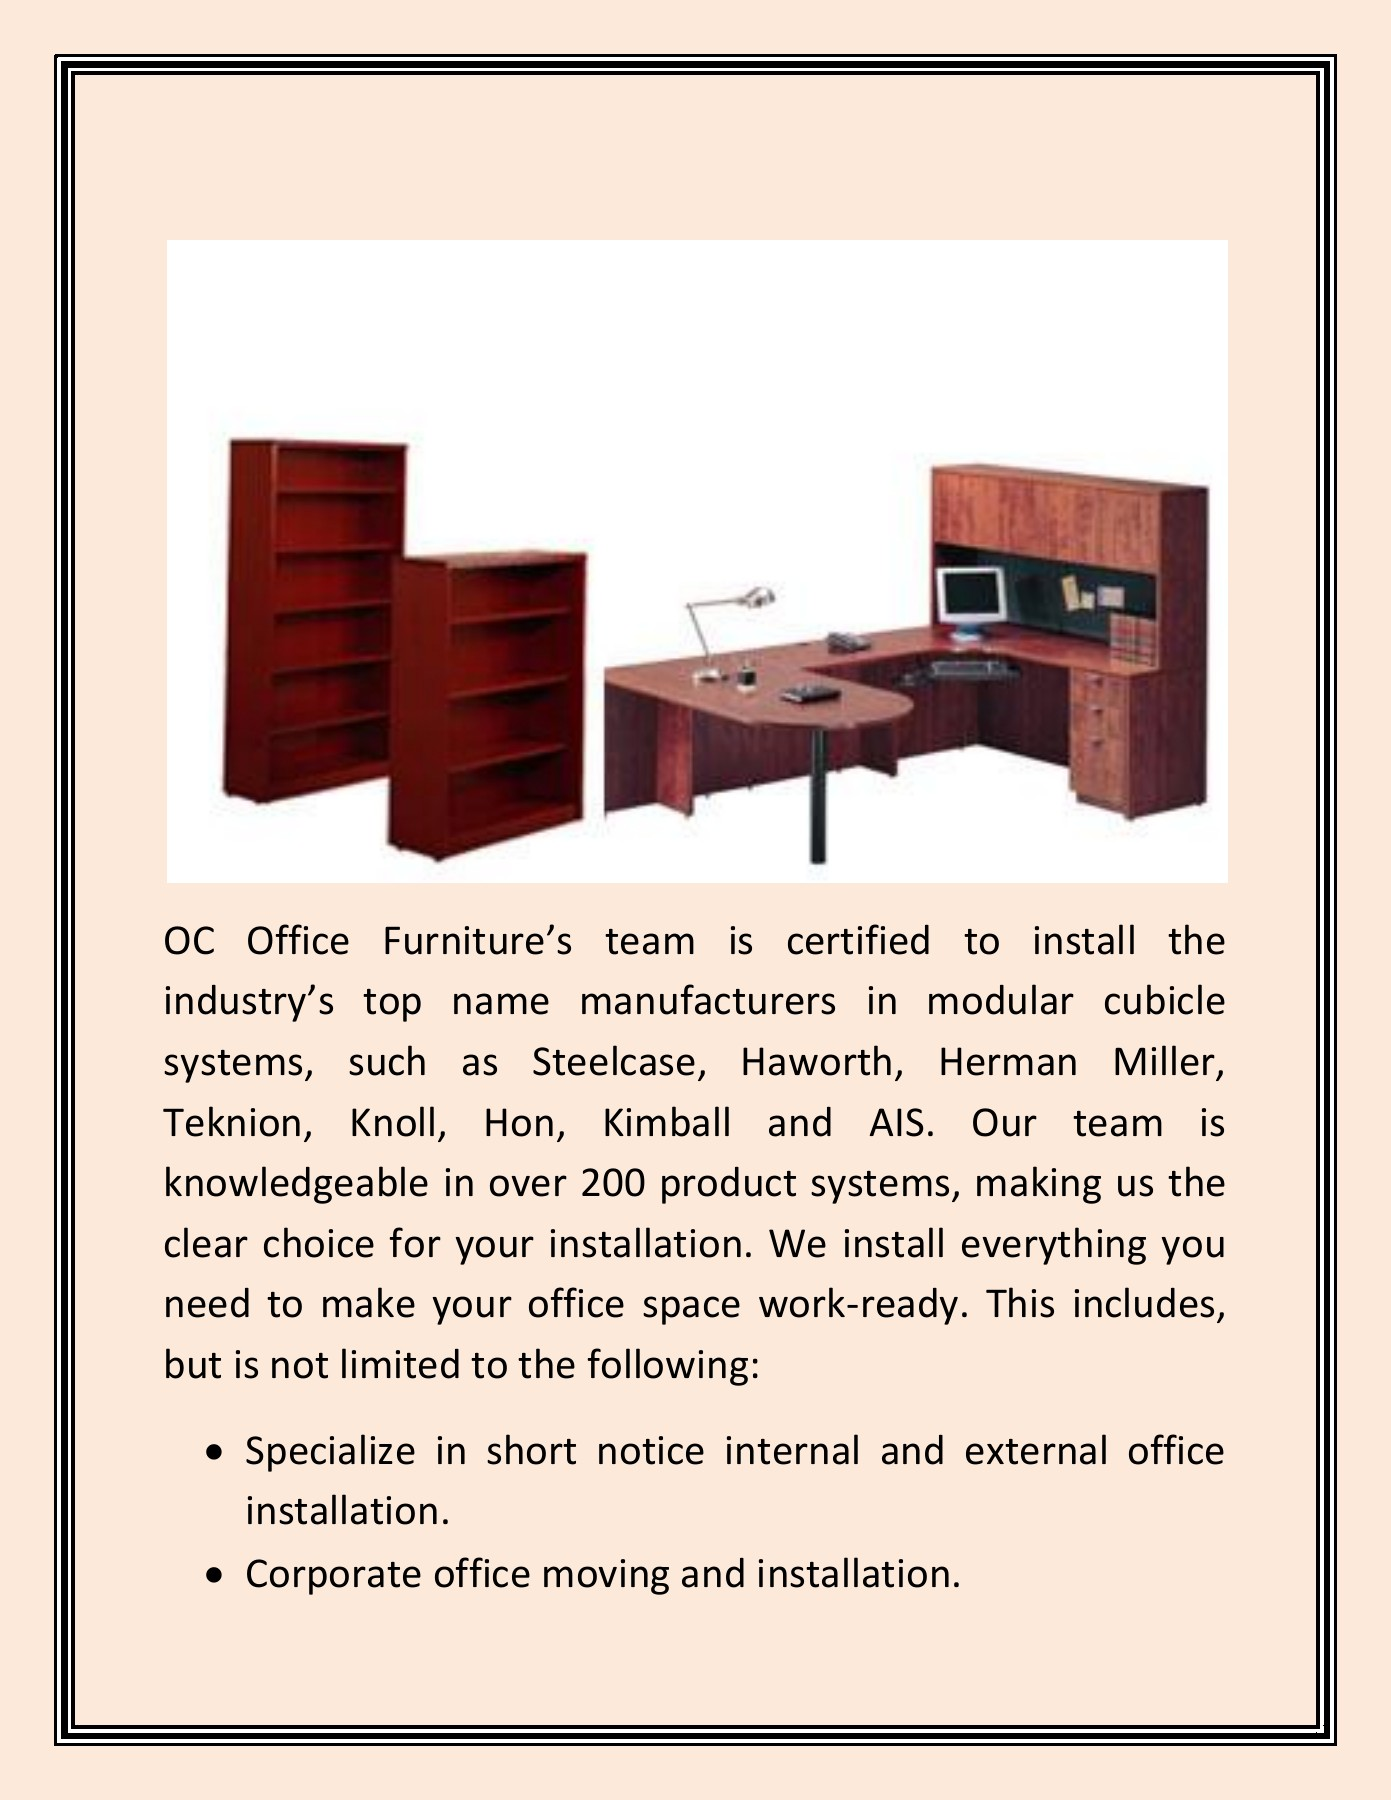 Oc Office Furniture Installs Your Cubicle Furniture Safely